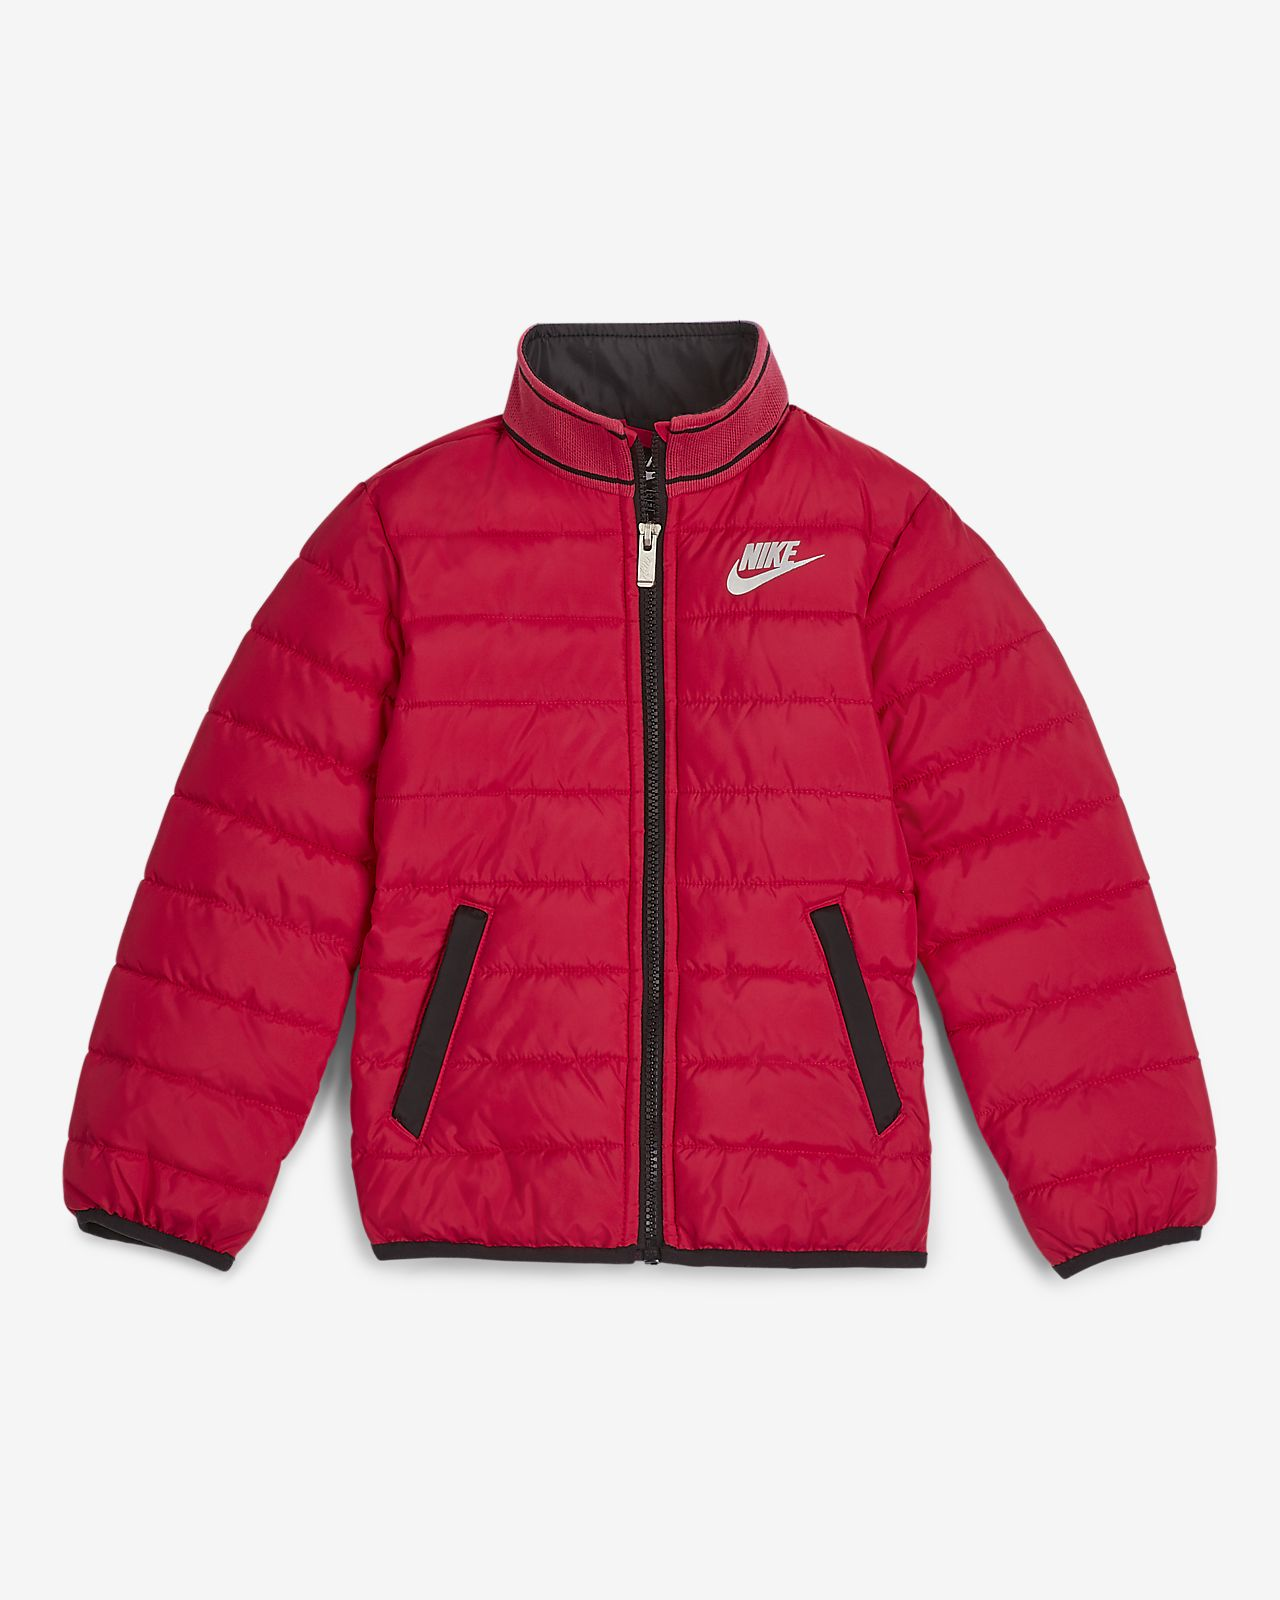 Nike Little Kids' Puffer Jacket